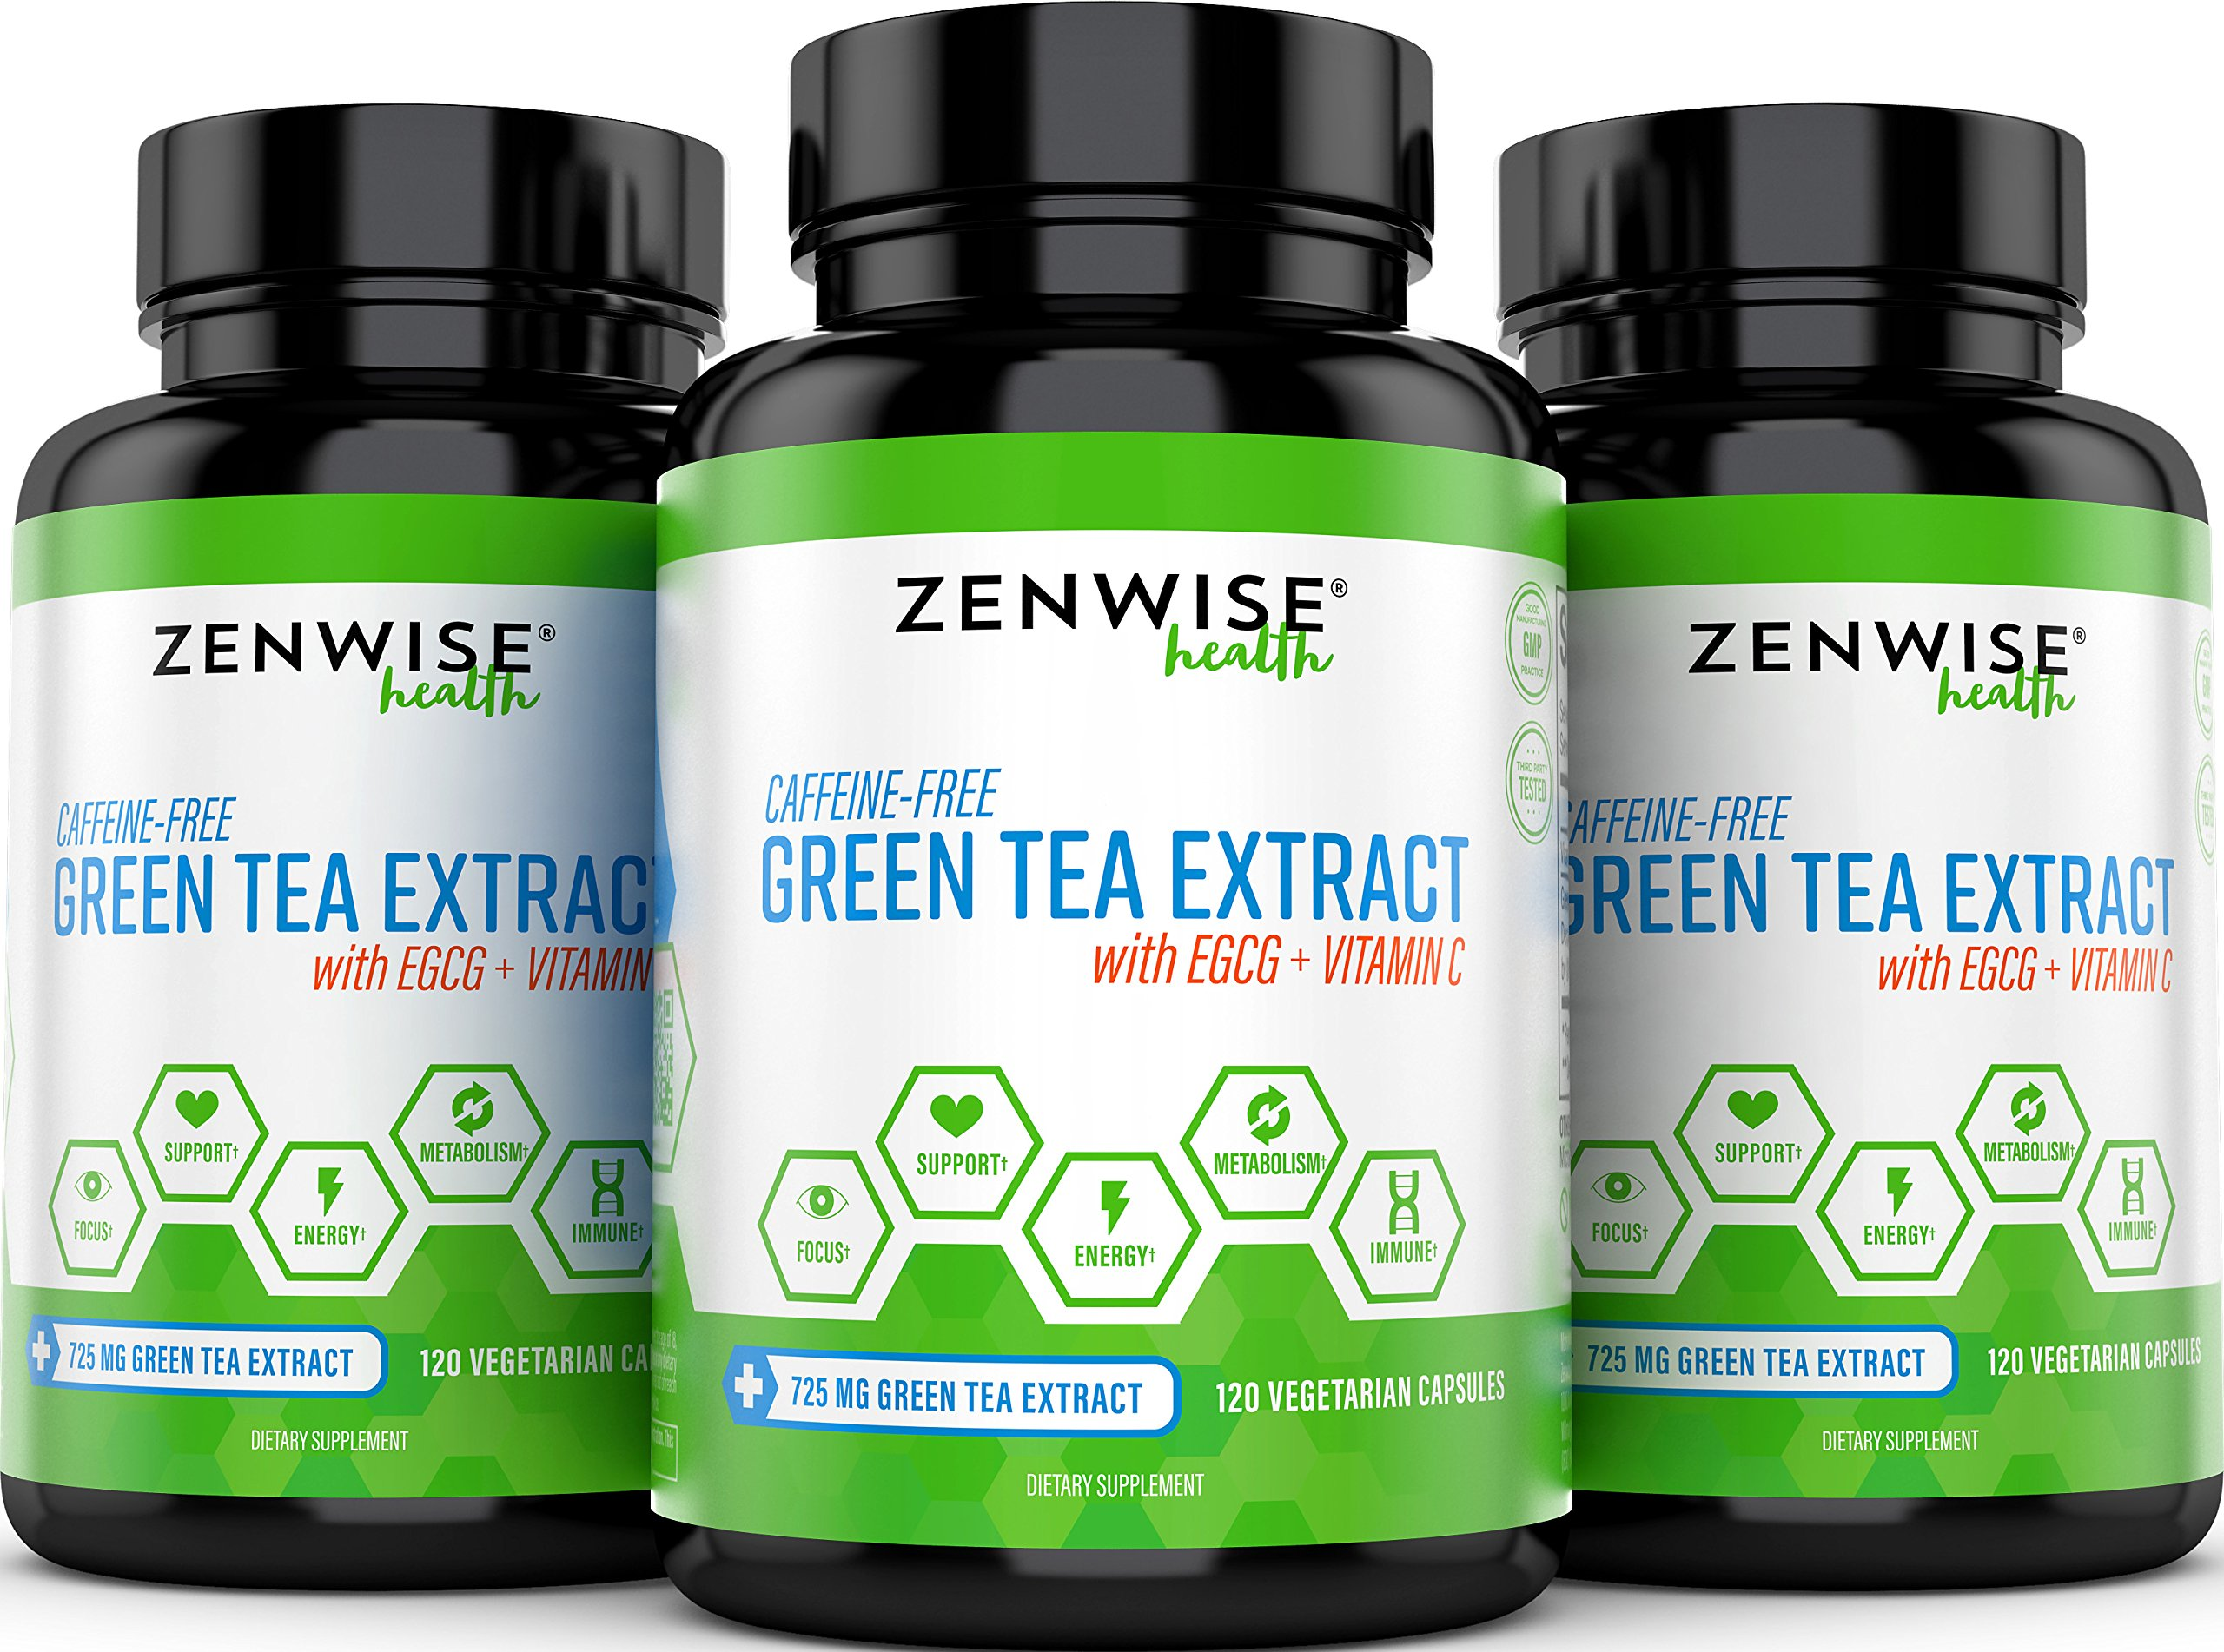 Green Tea Extract Supplement With Egcg Vitamin C